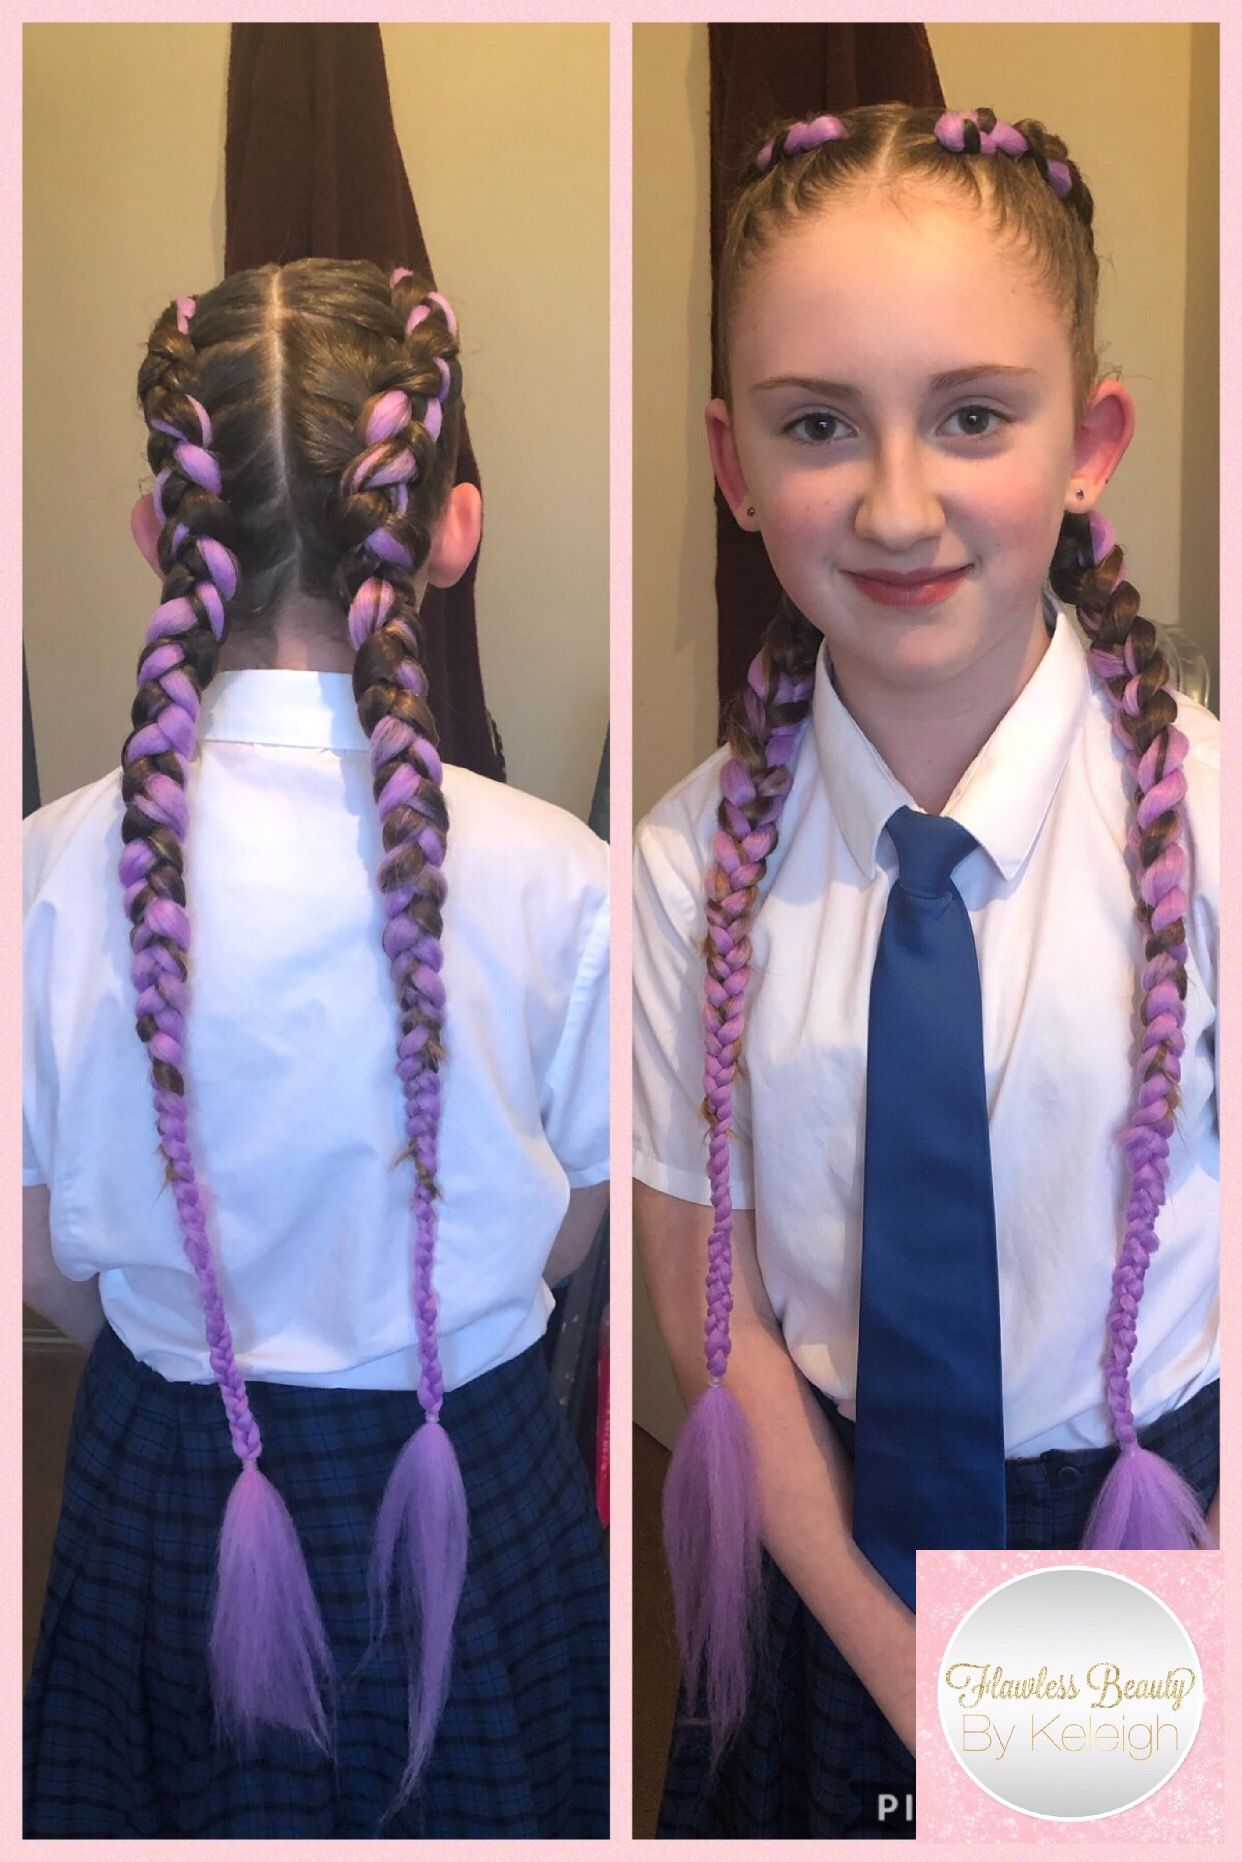 Mermaid Braids With Purple Braid Extensions Added Mermaid Braid Braid In Hair Extensions Braids With Extensions